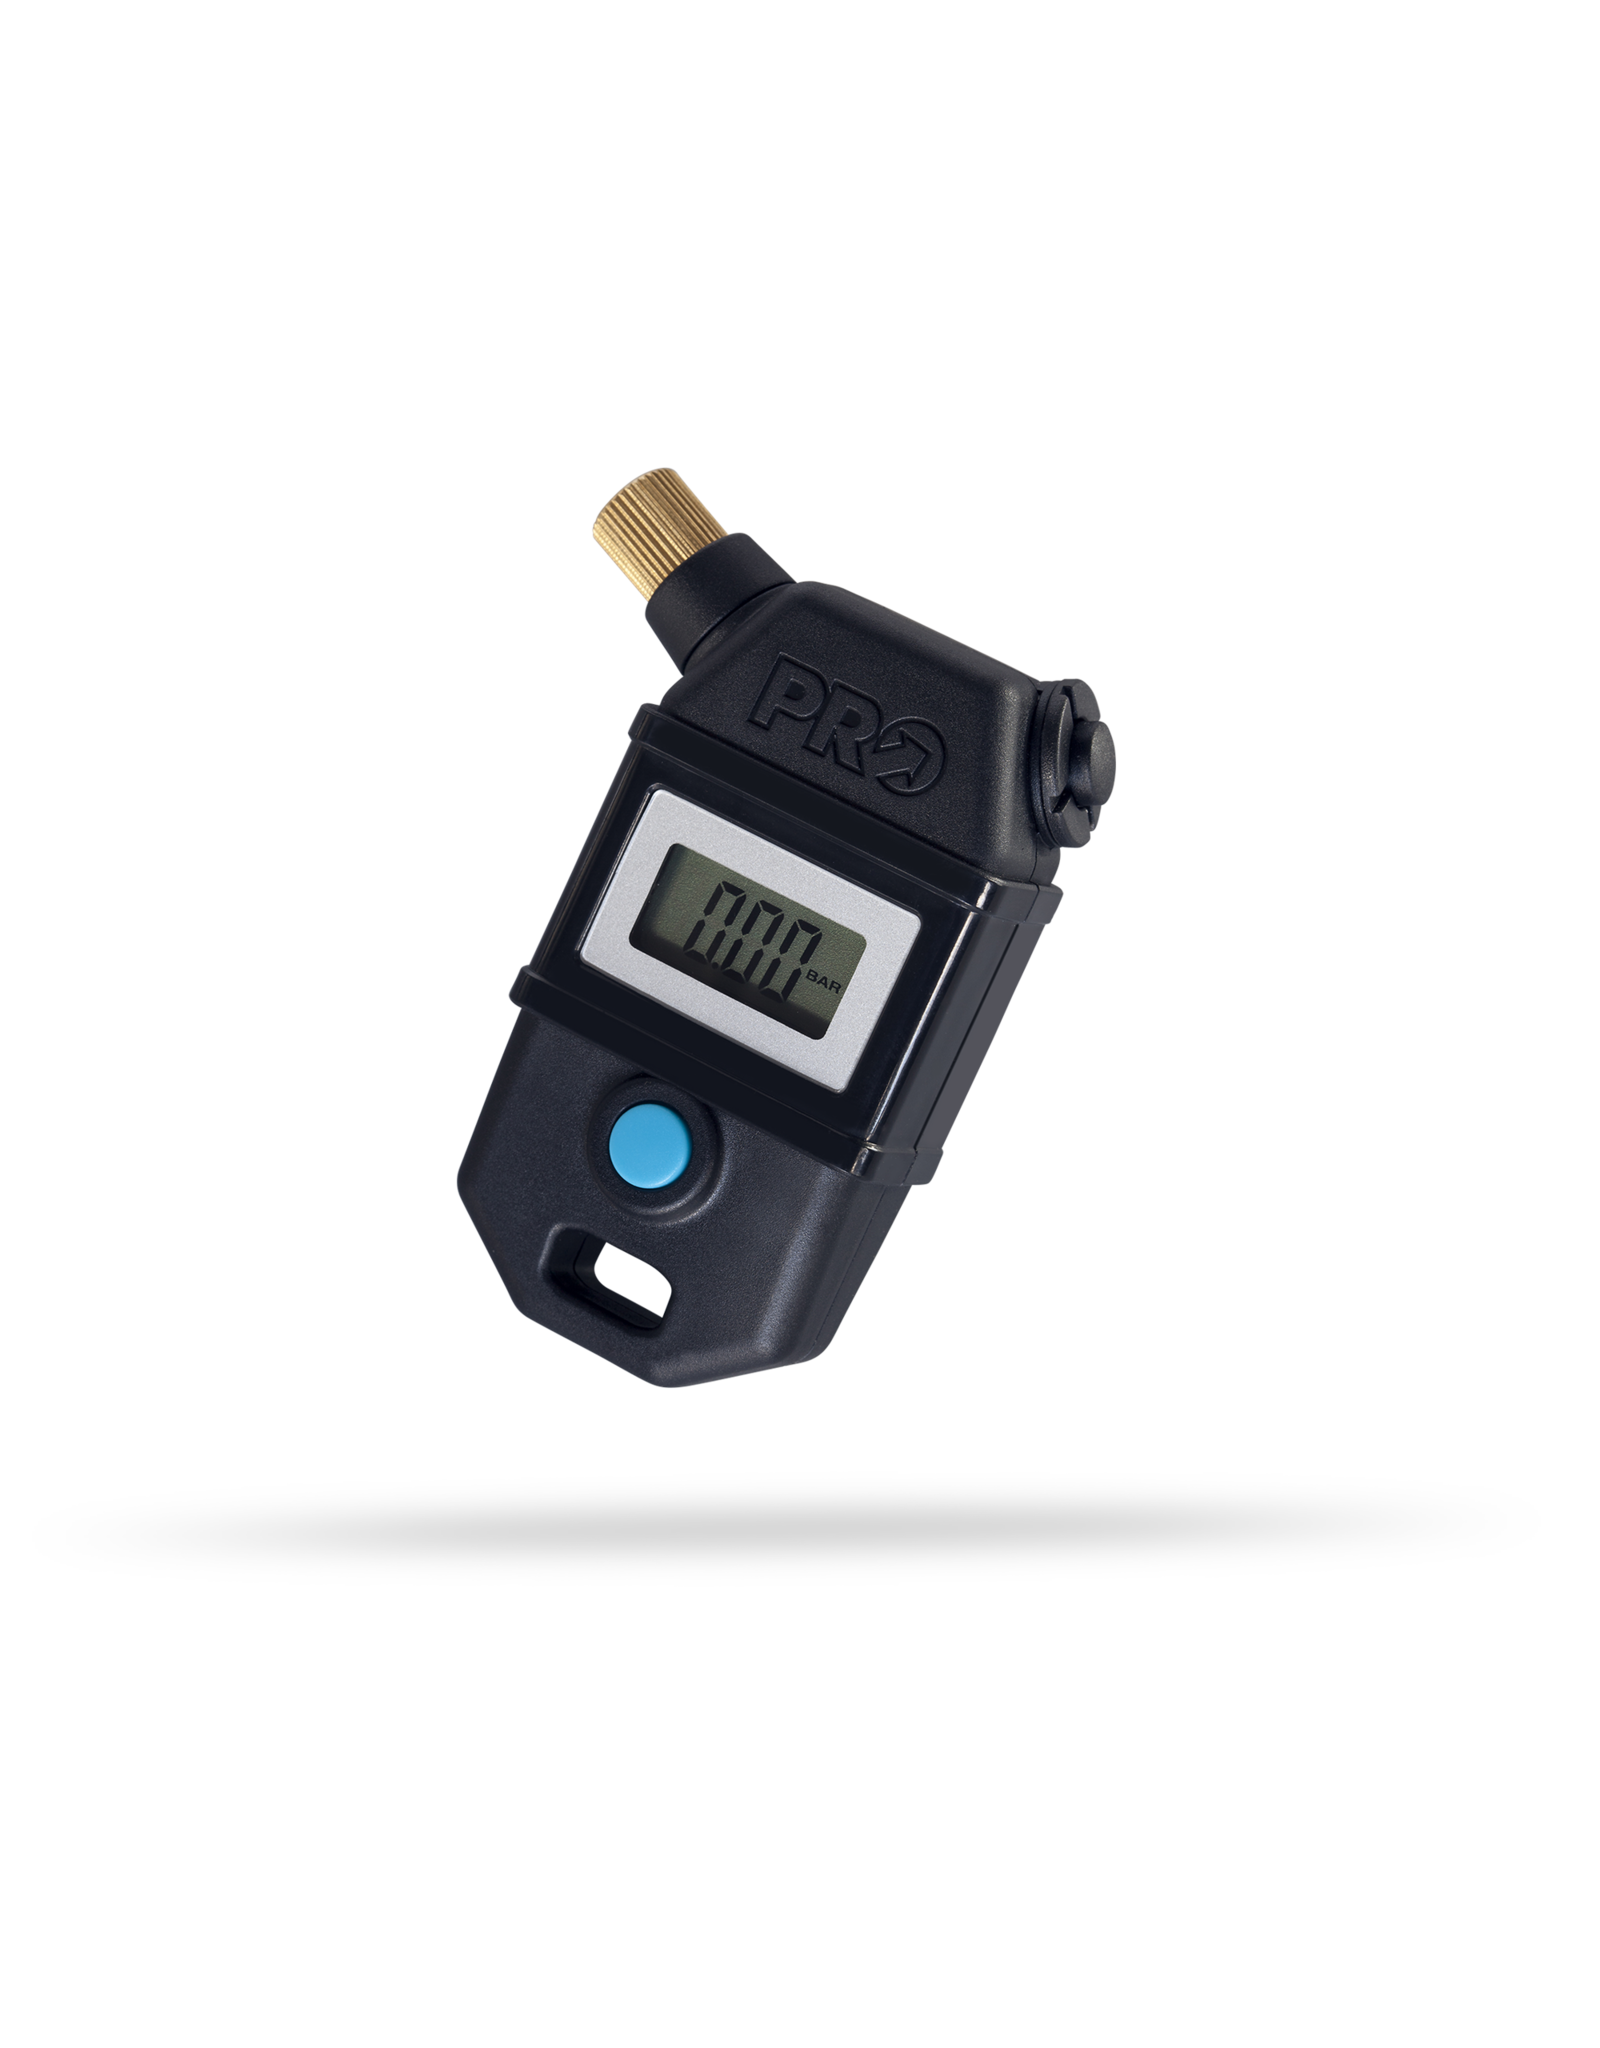 SHIMANO Pressure checker digital For presta valves/ Incl. Press